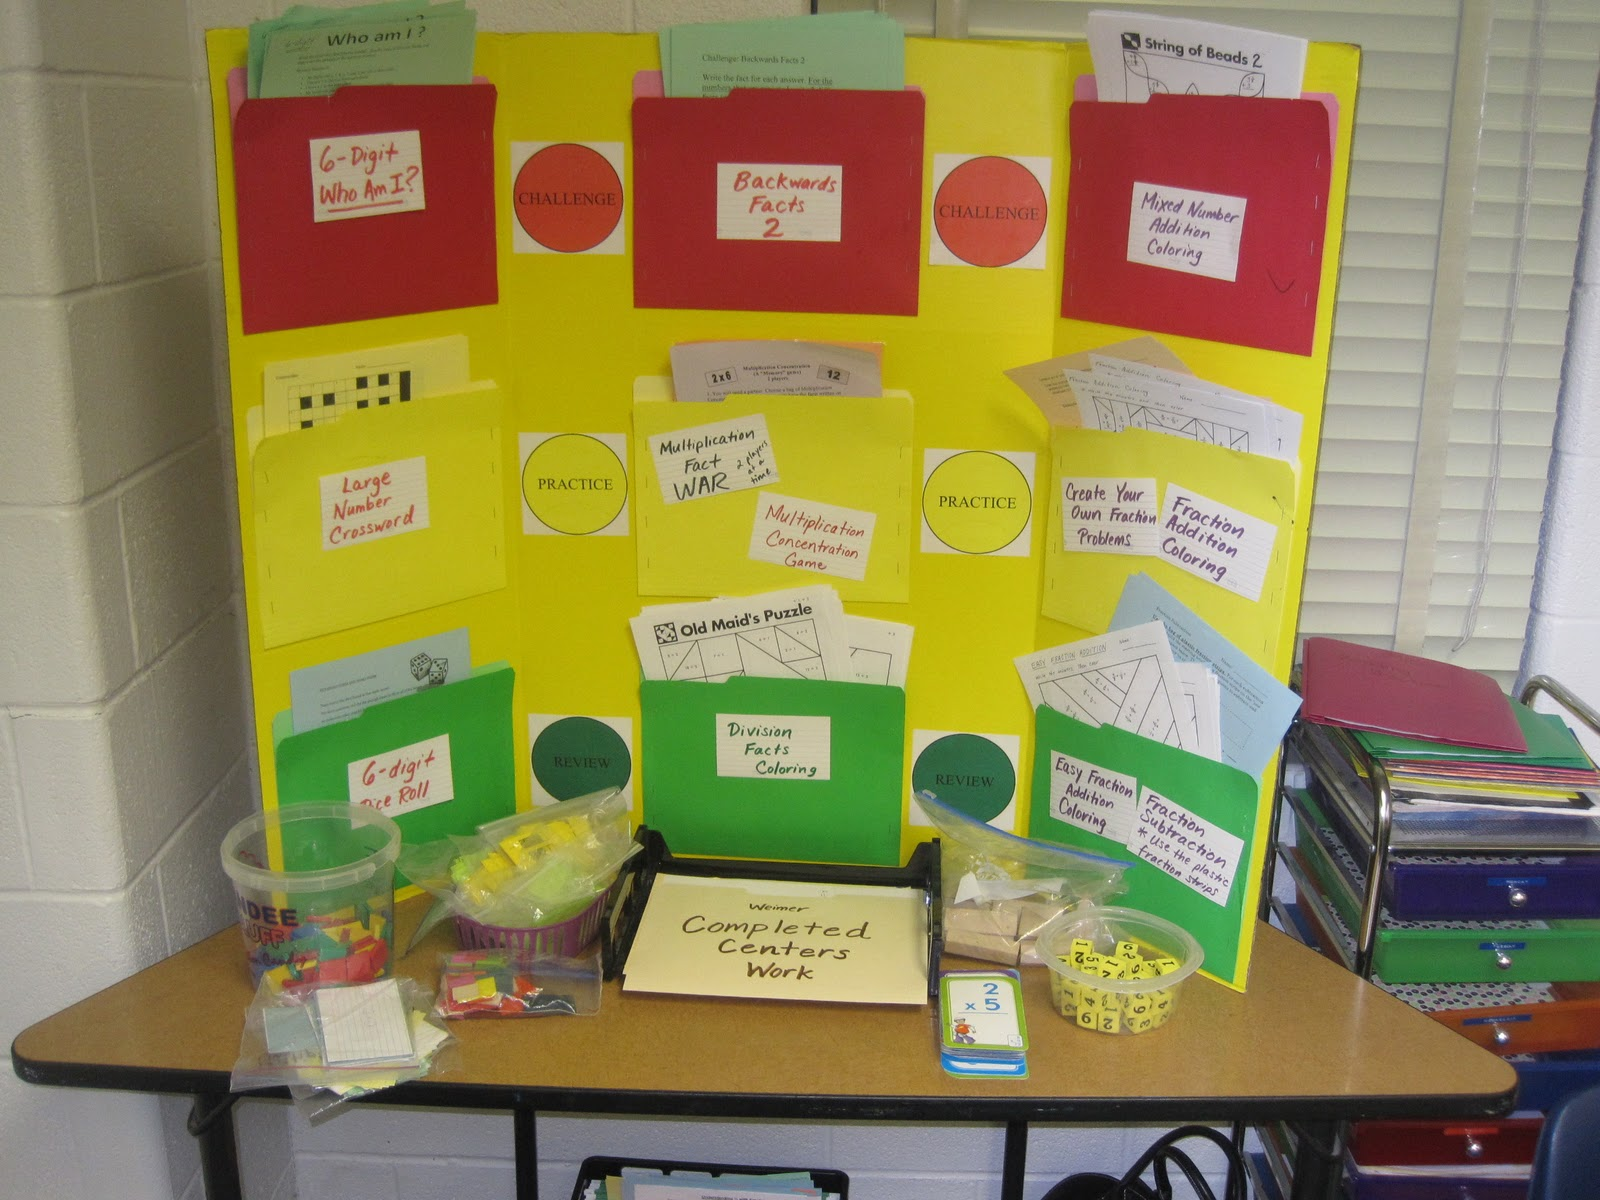 Math Center Ideas: Organizing Your Learning Center (Getting ... on math stuff to print, playdough center signs printables, math games, block center printables, math printable pages, daycare lady printables, president's day printables, math worksheets, reading printables, writing center printables, math for 12th graders, preschool center printables, school center printables, math daily 5 clip art, math sheets for 4 graders, math work, art printables, math for 1st graders, science center printables, i have who has printables,